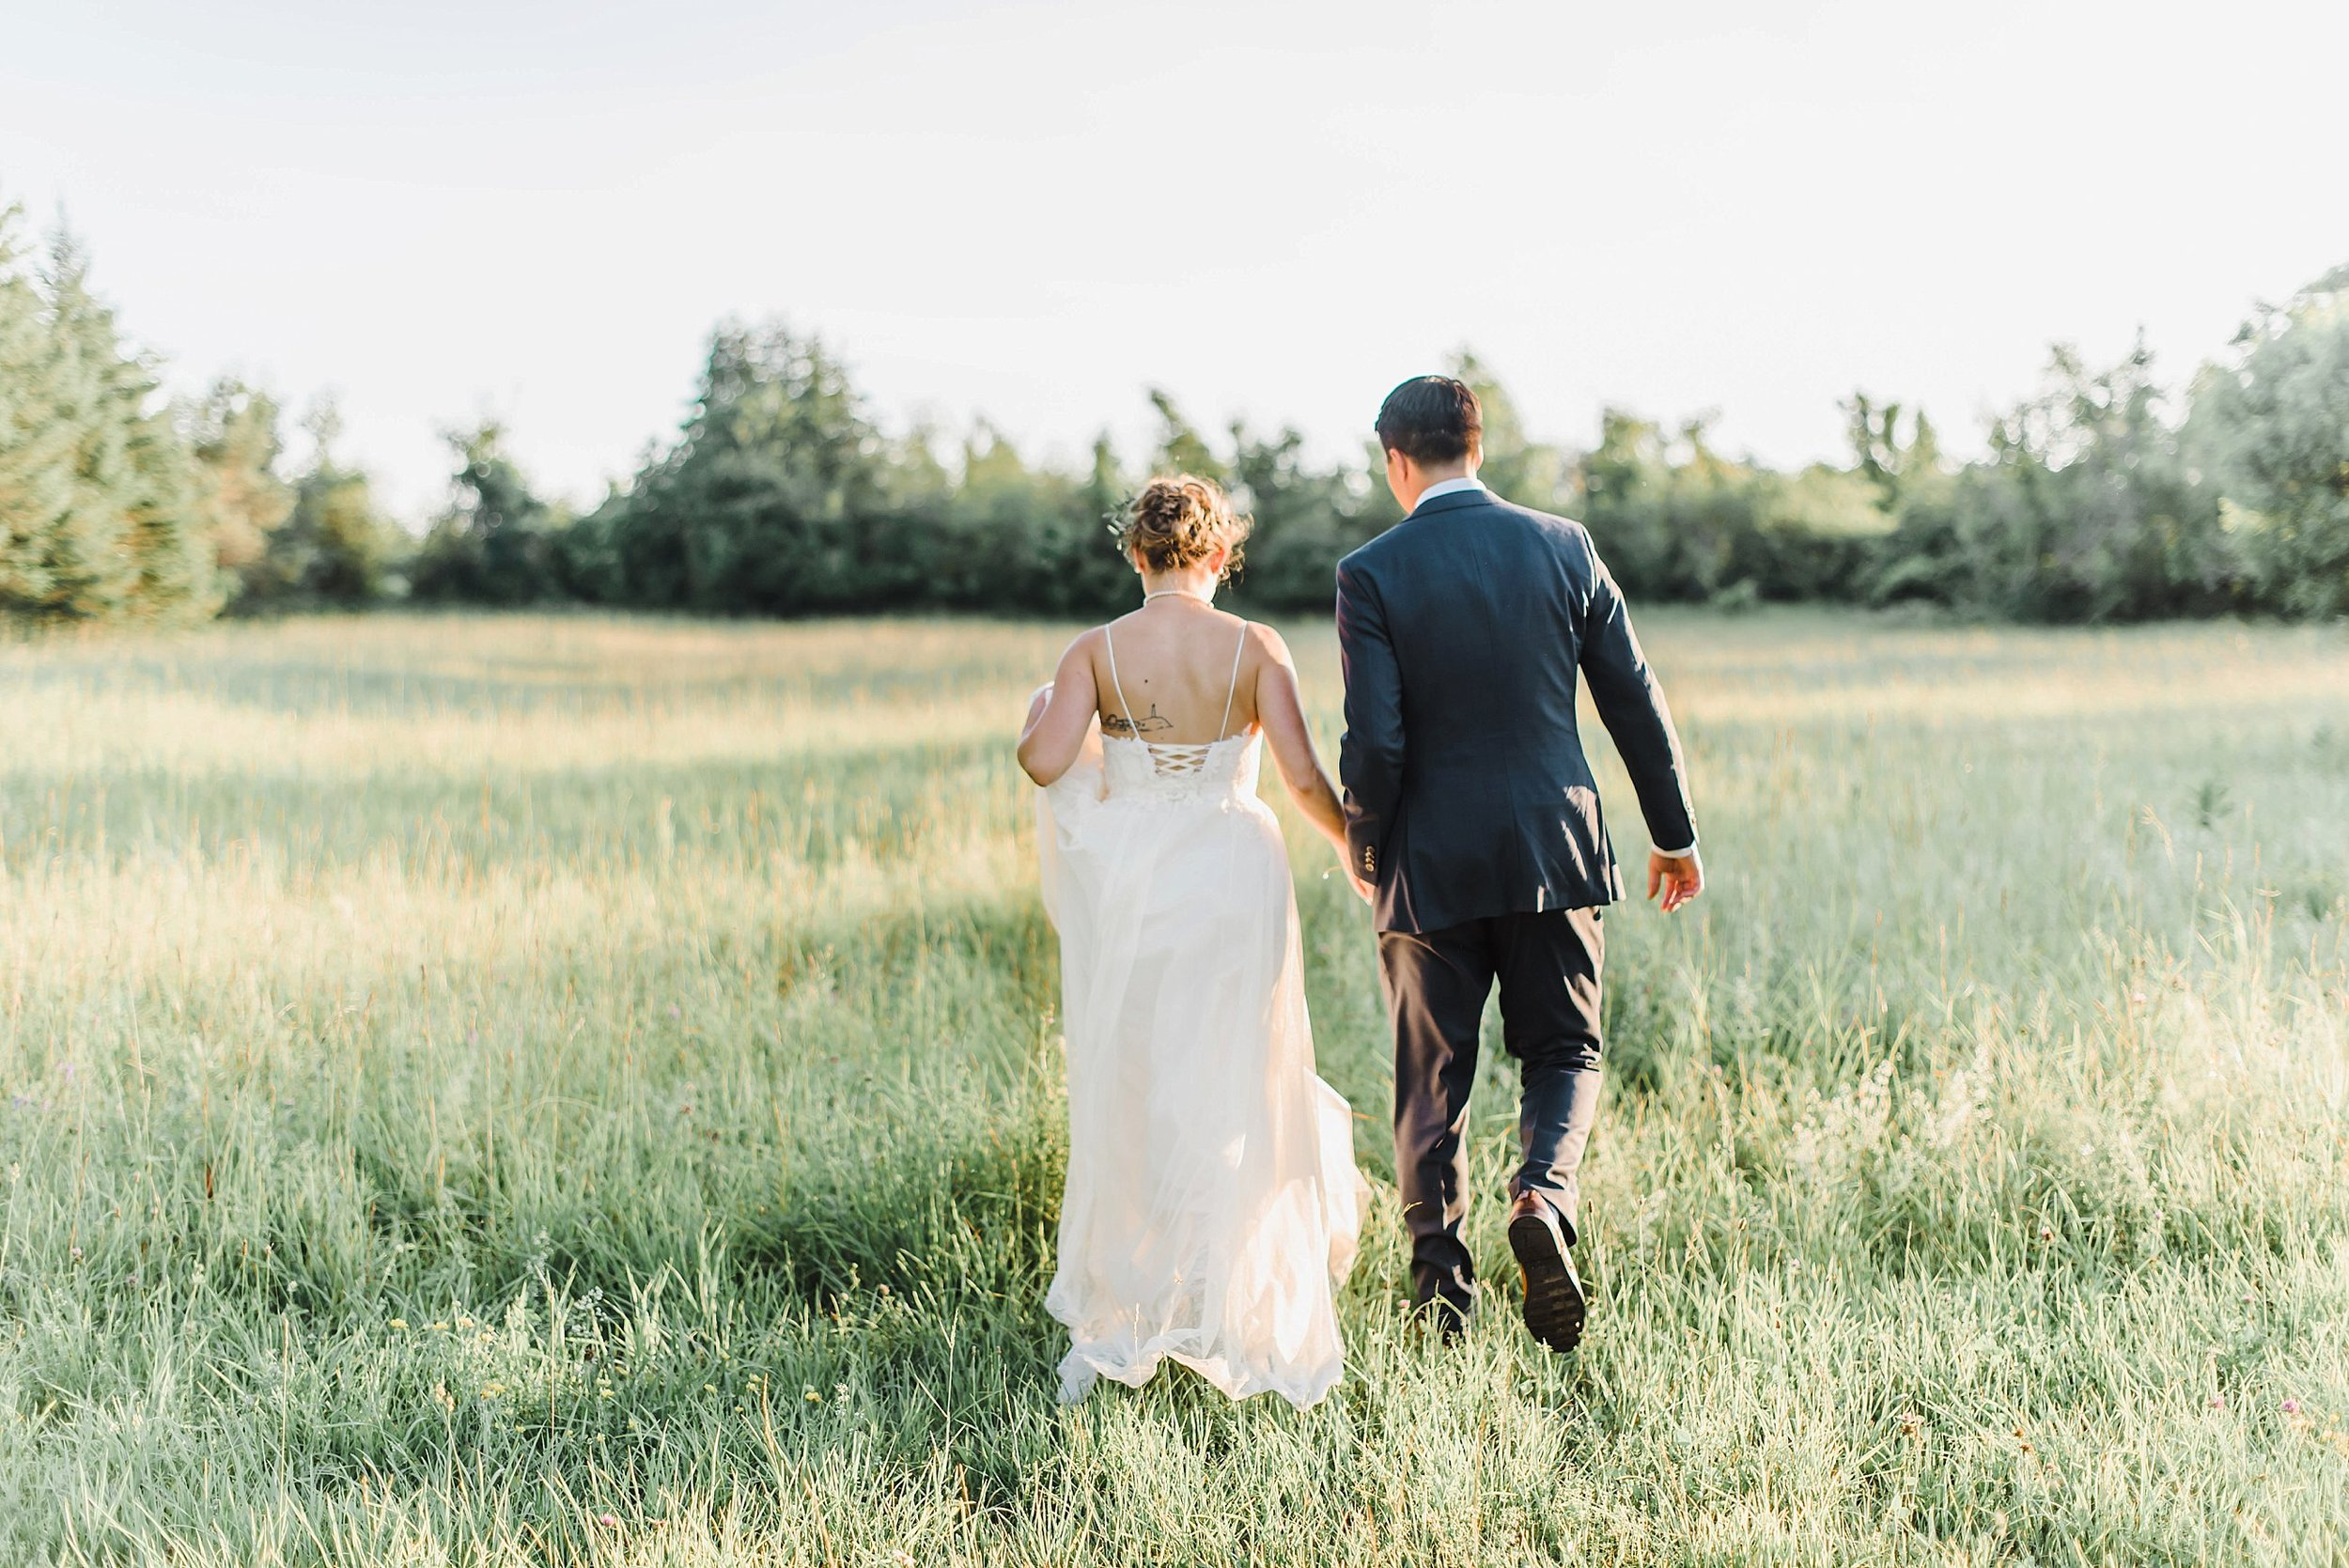 We had a few minutes to run over to the field to capture some golden hour photos before the second portion of the night.  The light was beautiful and made for the most romantic 'just married' photos!